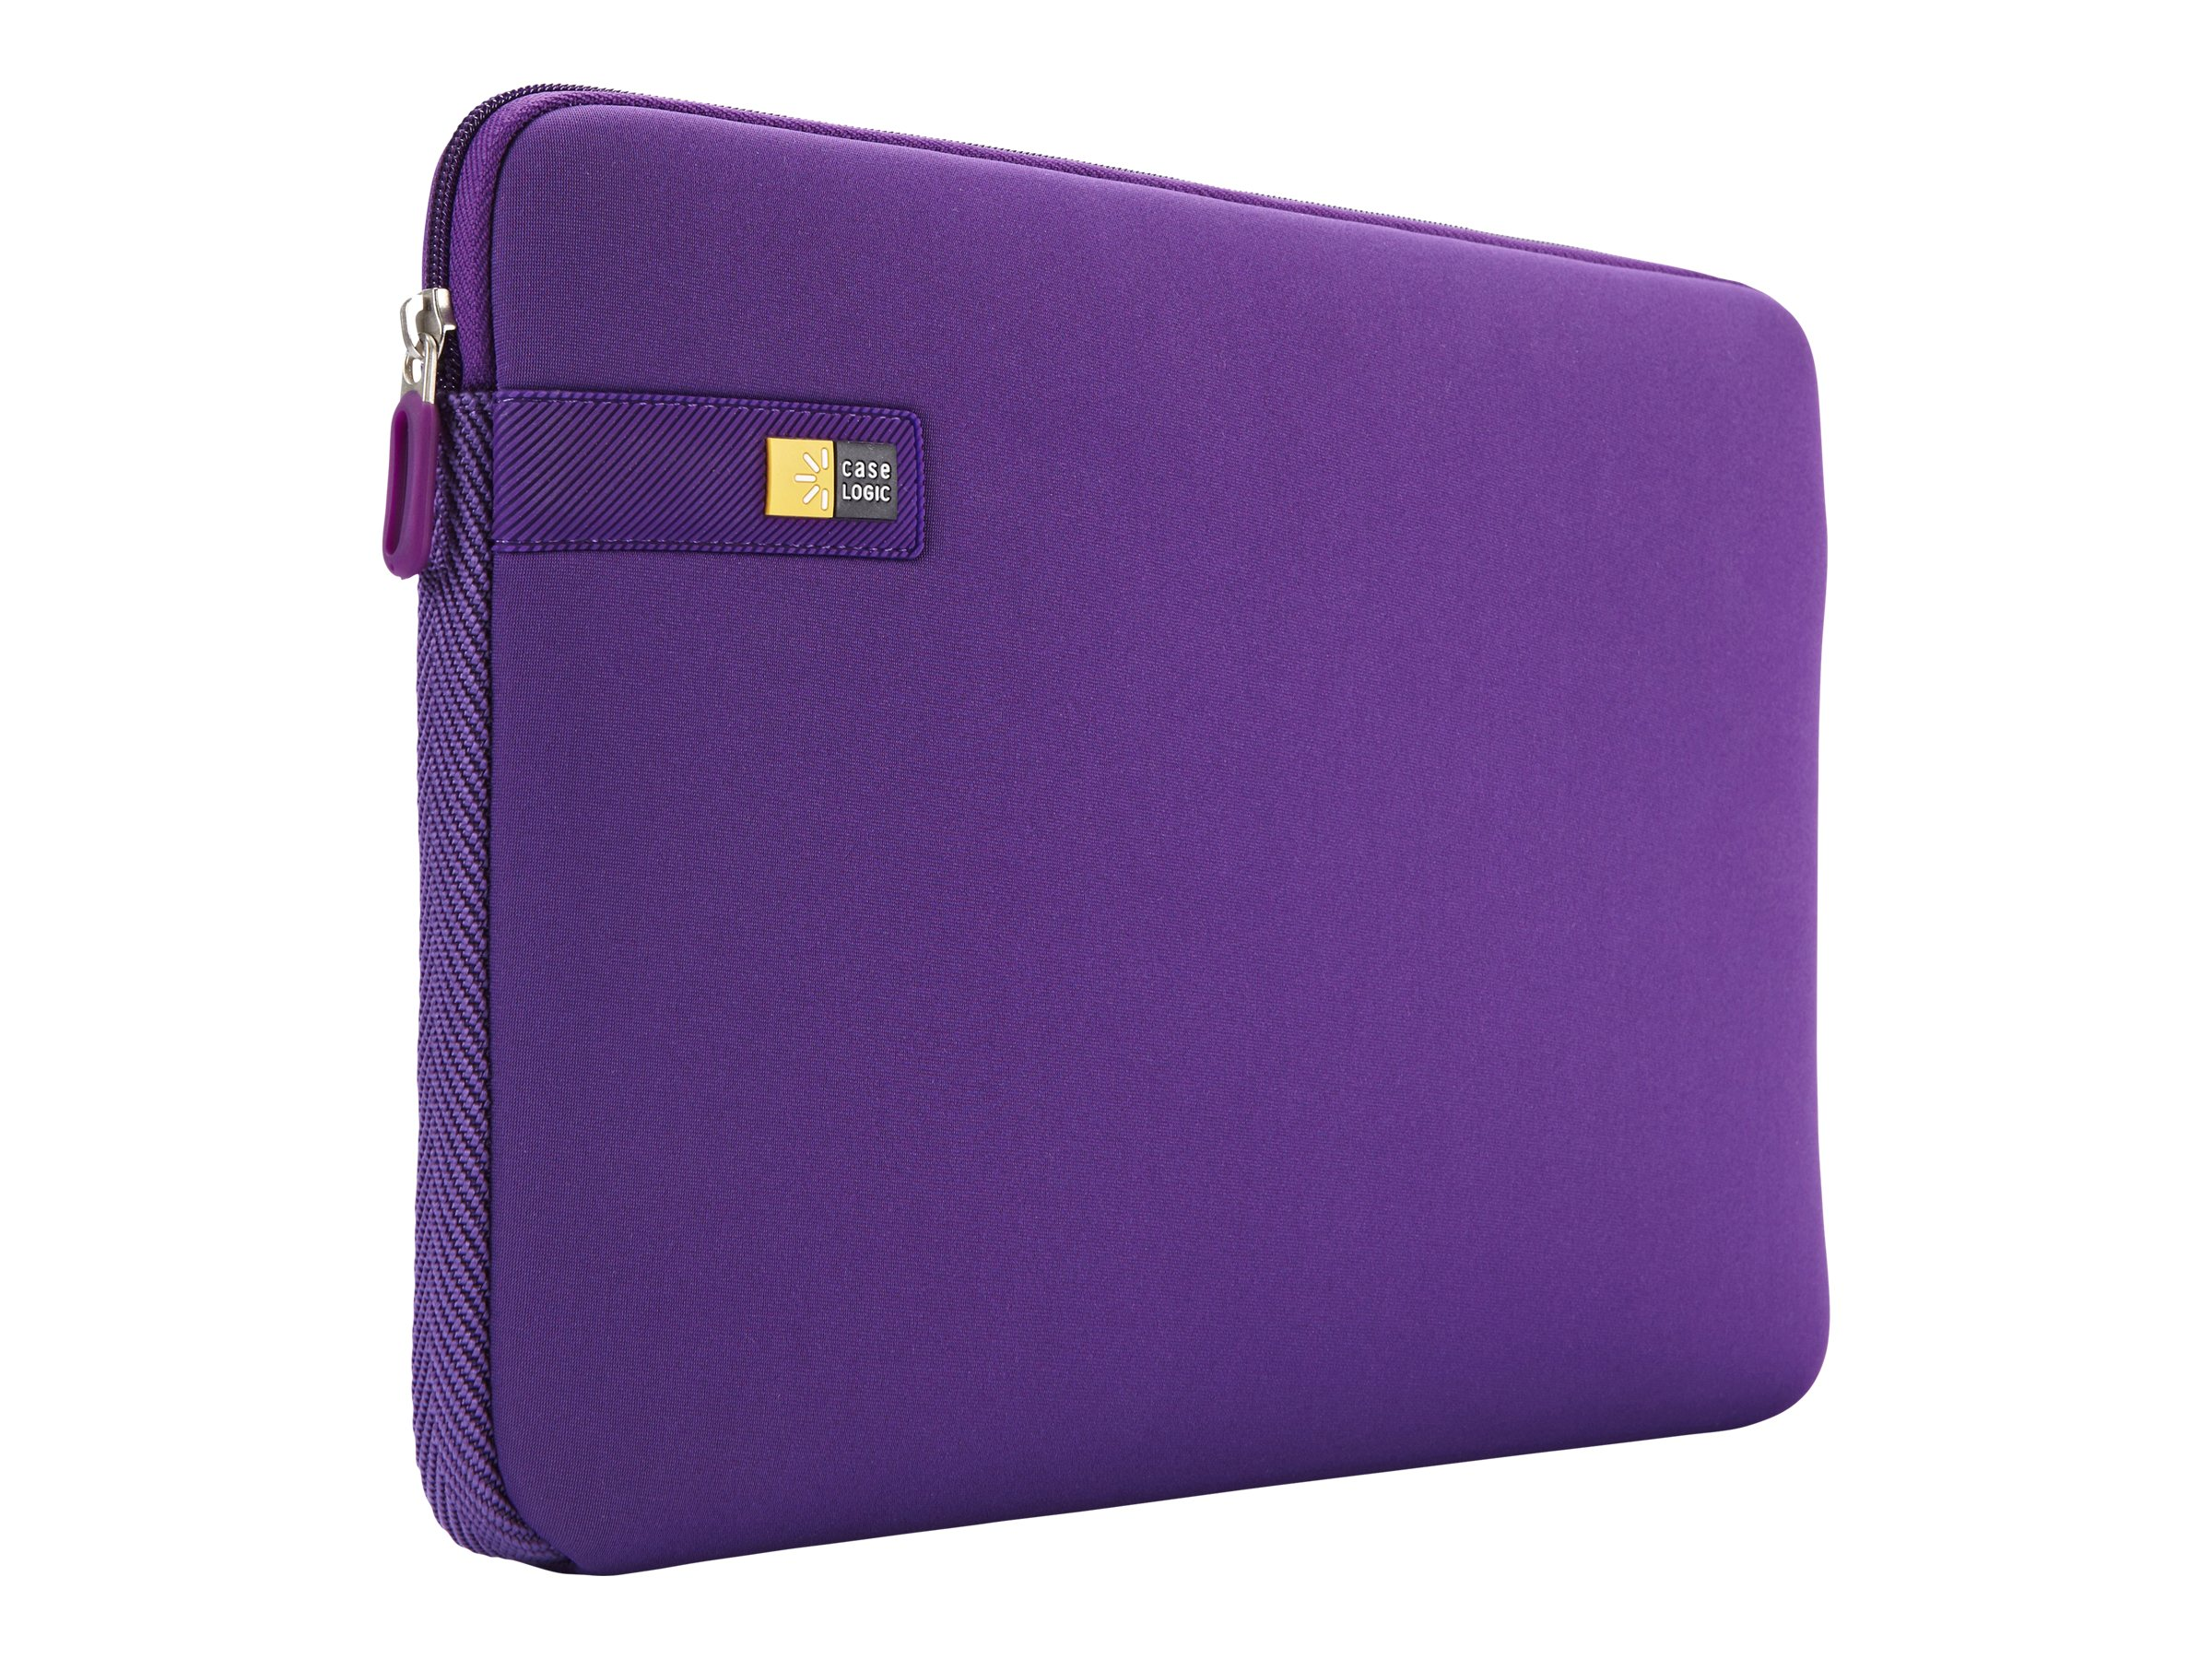 Case Logic 13.3 Laptop Sleeve, Purple, LAPS-113PURPLE, 15269361, Carrying Cases - Notebook